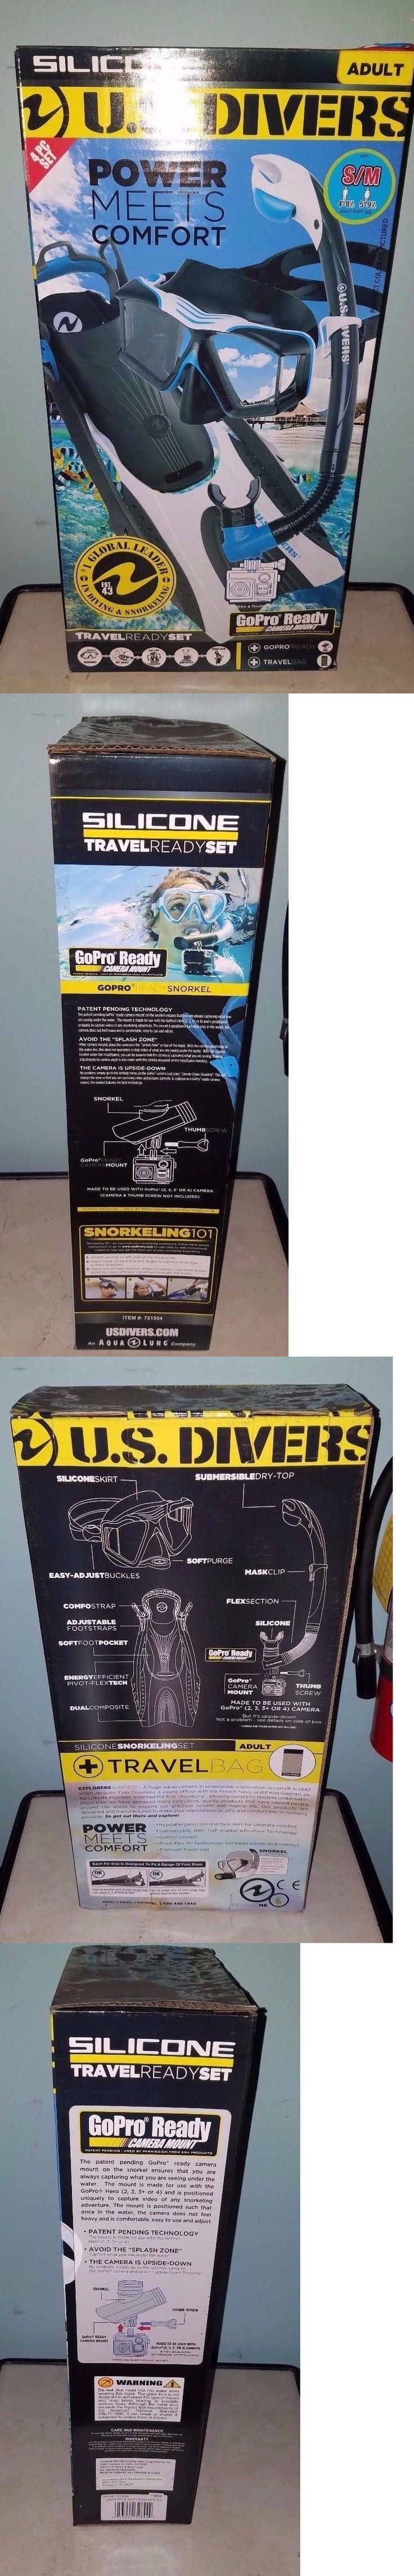 Snorkels and Sets 71162: U.S. Divers Gopro Ready 4Pc Snorkel Set, Adult Small, Blue, Green, Nib -> BUY IT NOW ONLY: $30 on eBay!